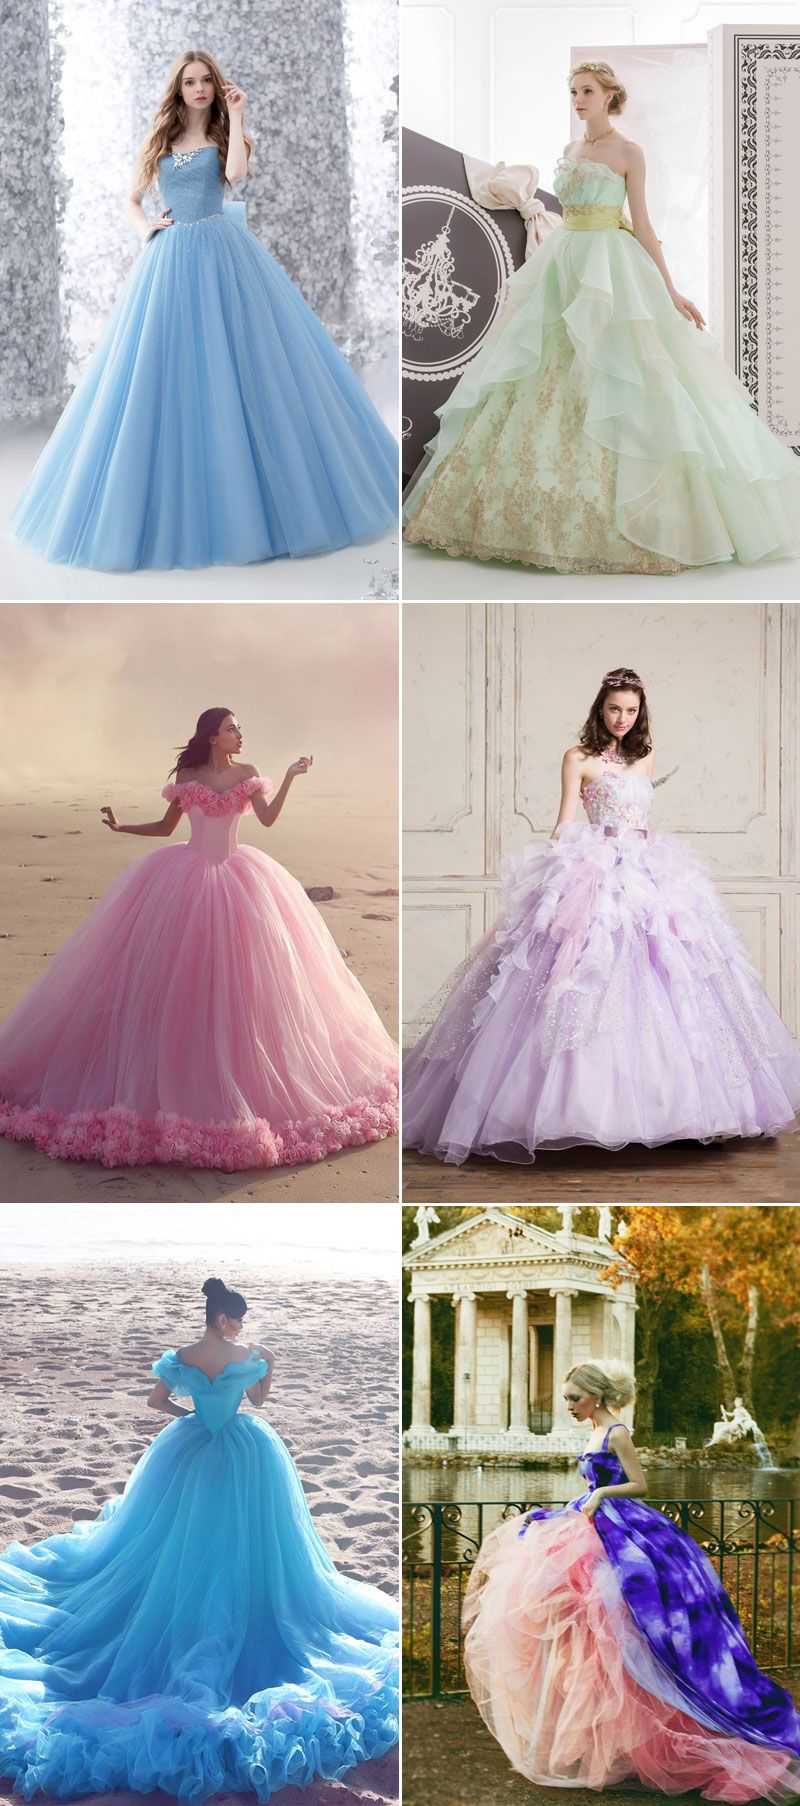 1350a04255 Outstanding - Ball Gown Prom Dresses Near Me  27 Princess-worthy Ball Gowns  That Define Regal Elegance!